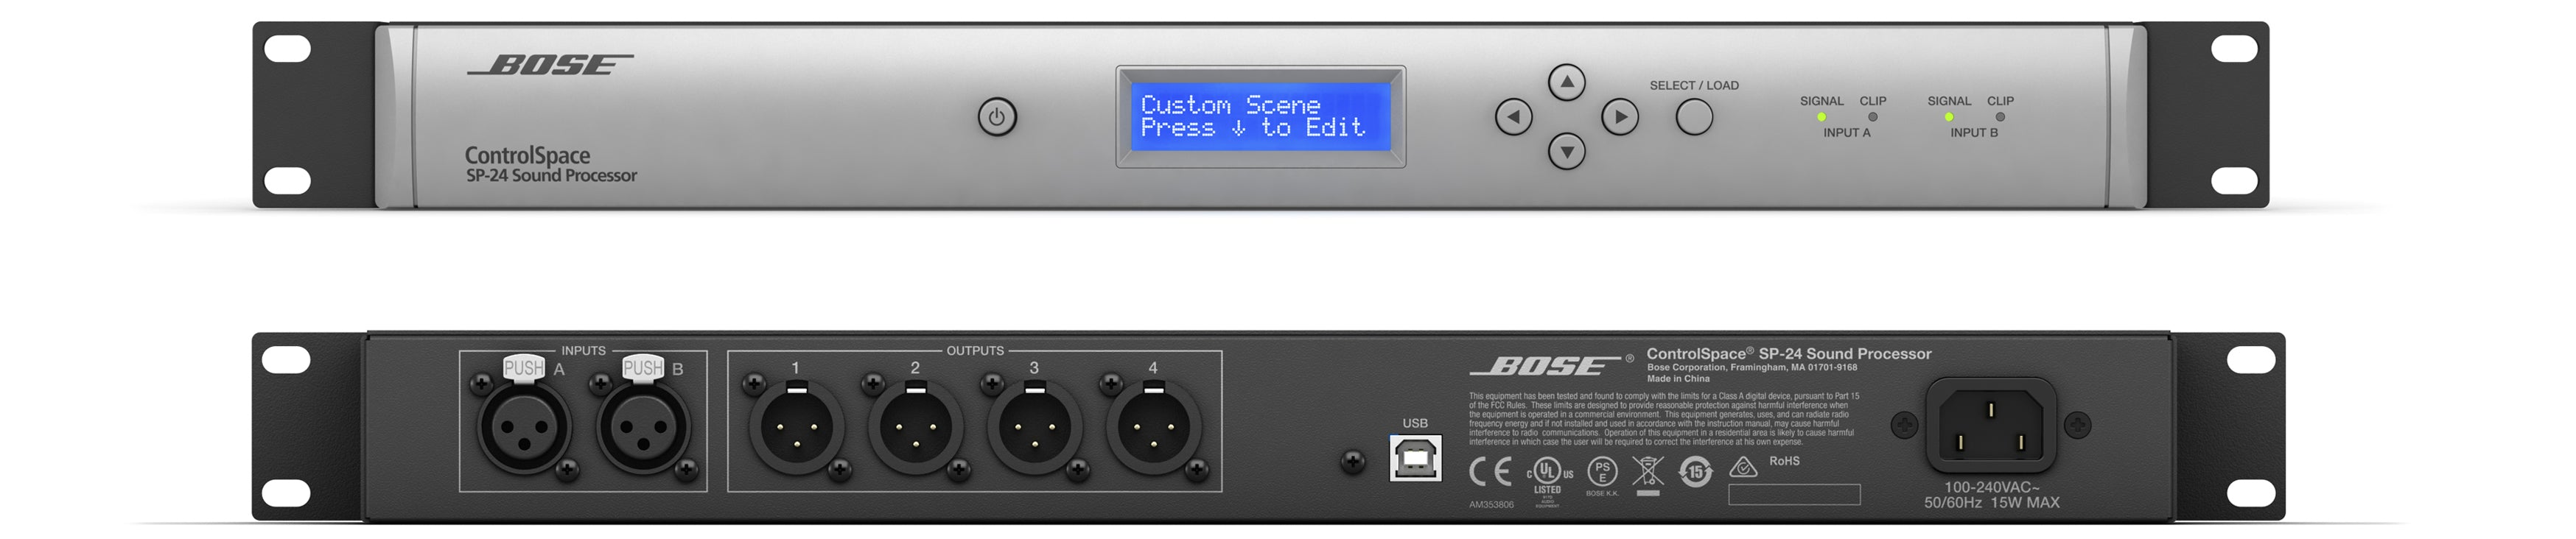 bose control space sp-24